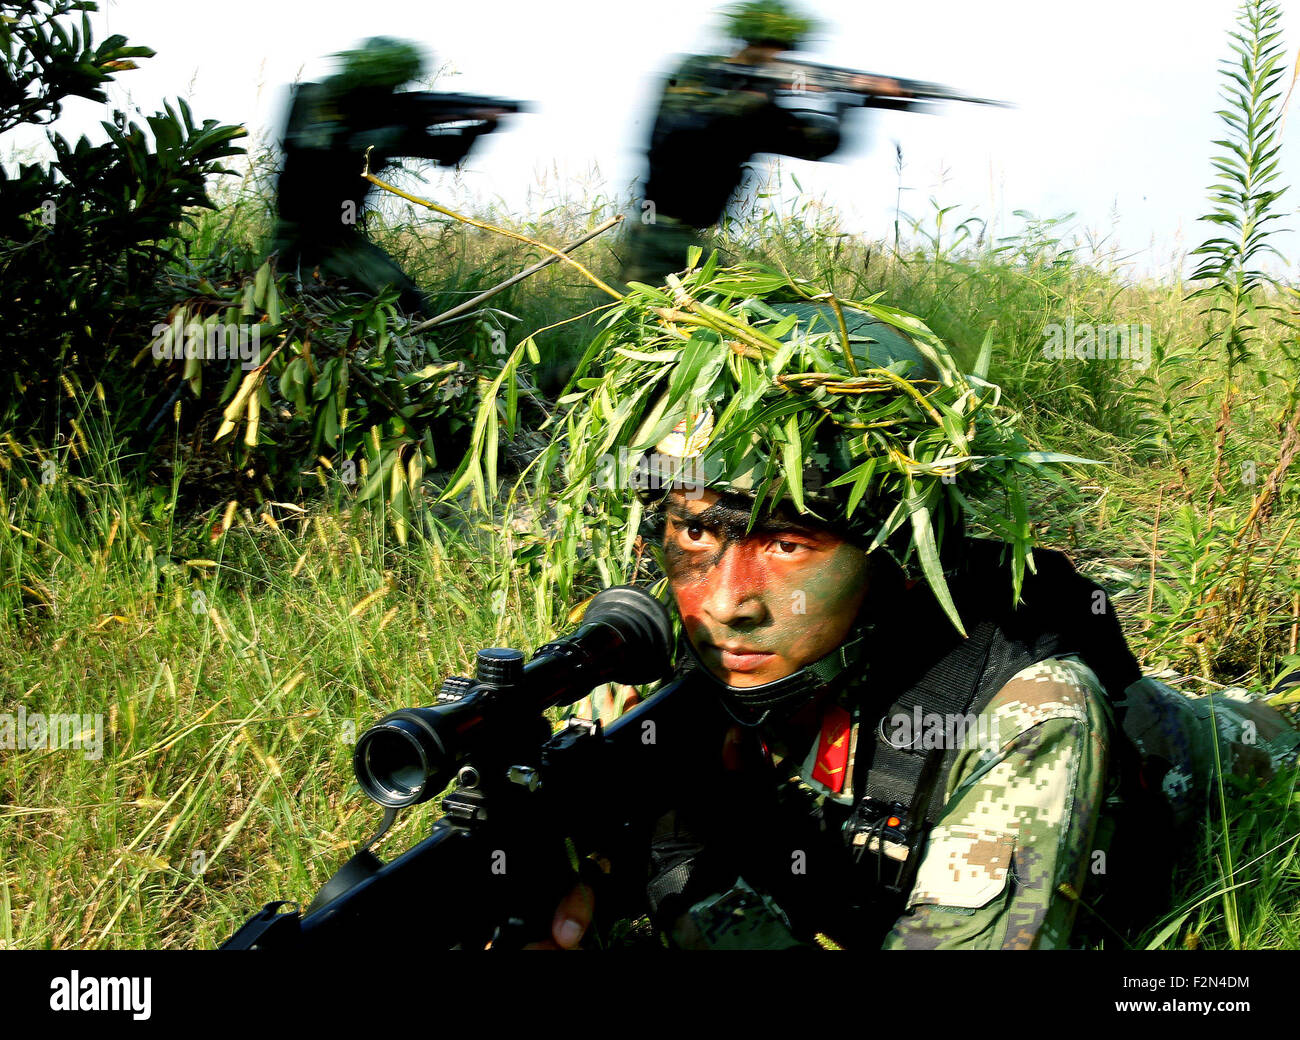 Shanghai, China. 21st Sep, 2015. An armed police sniper lurks during a drill in Shanghai, east China, Sept. 21, - Stock Image